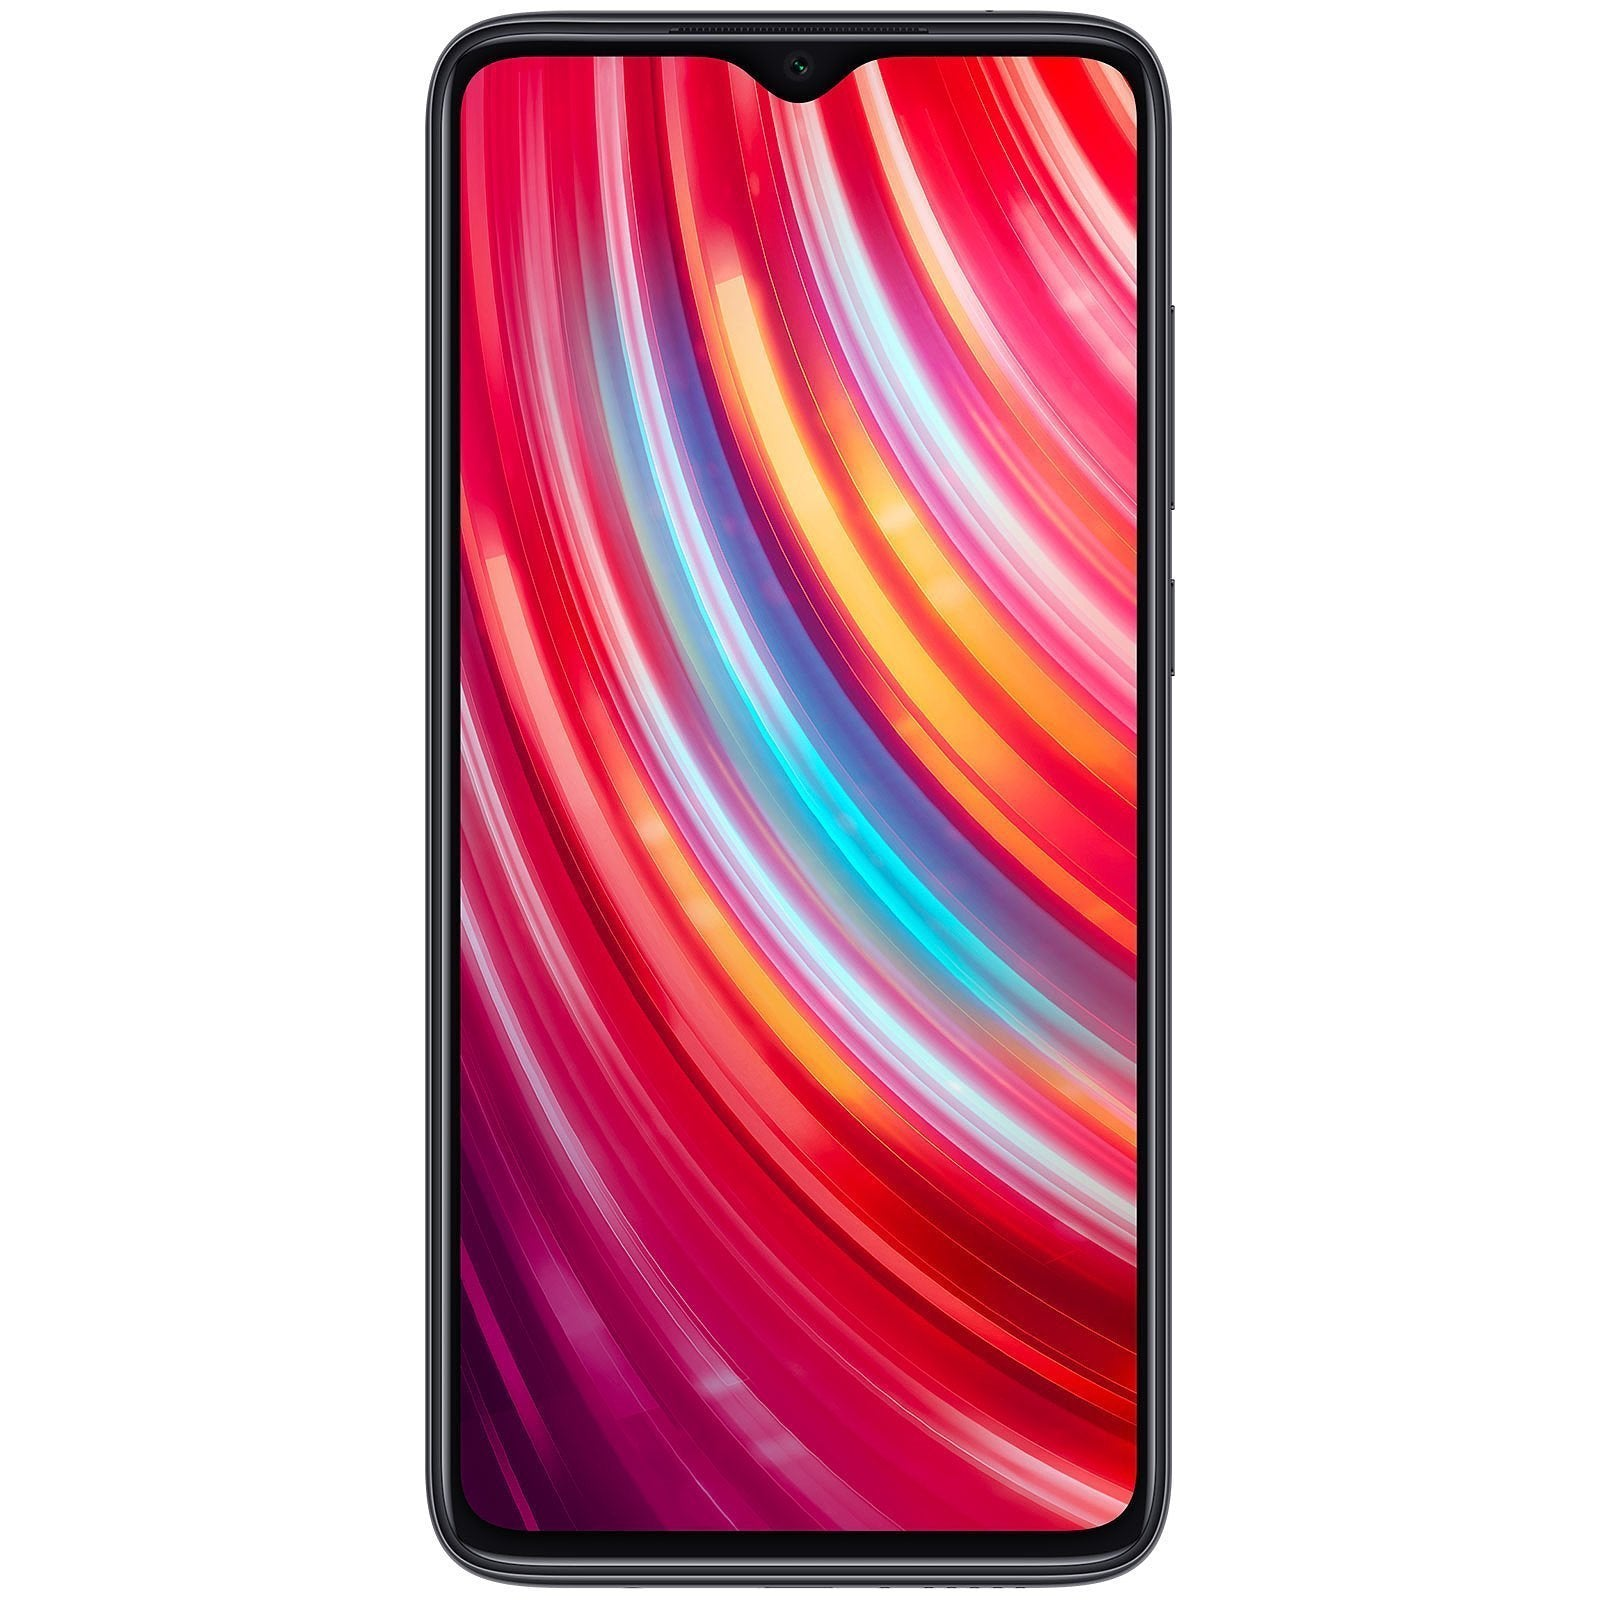 Xiaomi Redmi Note 8 Pro 6GB + 64GB Mineral Grey Black